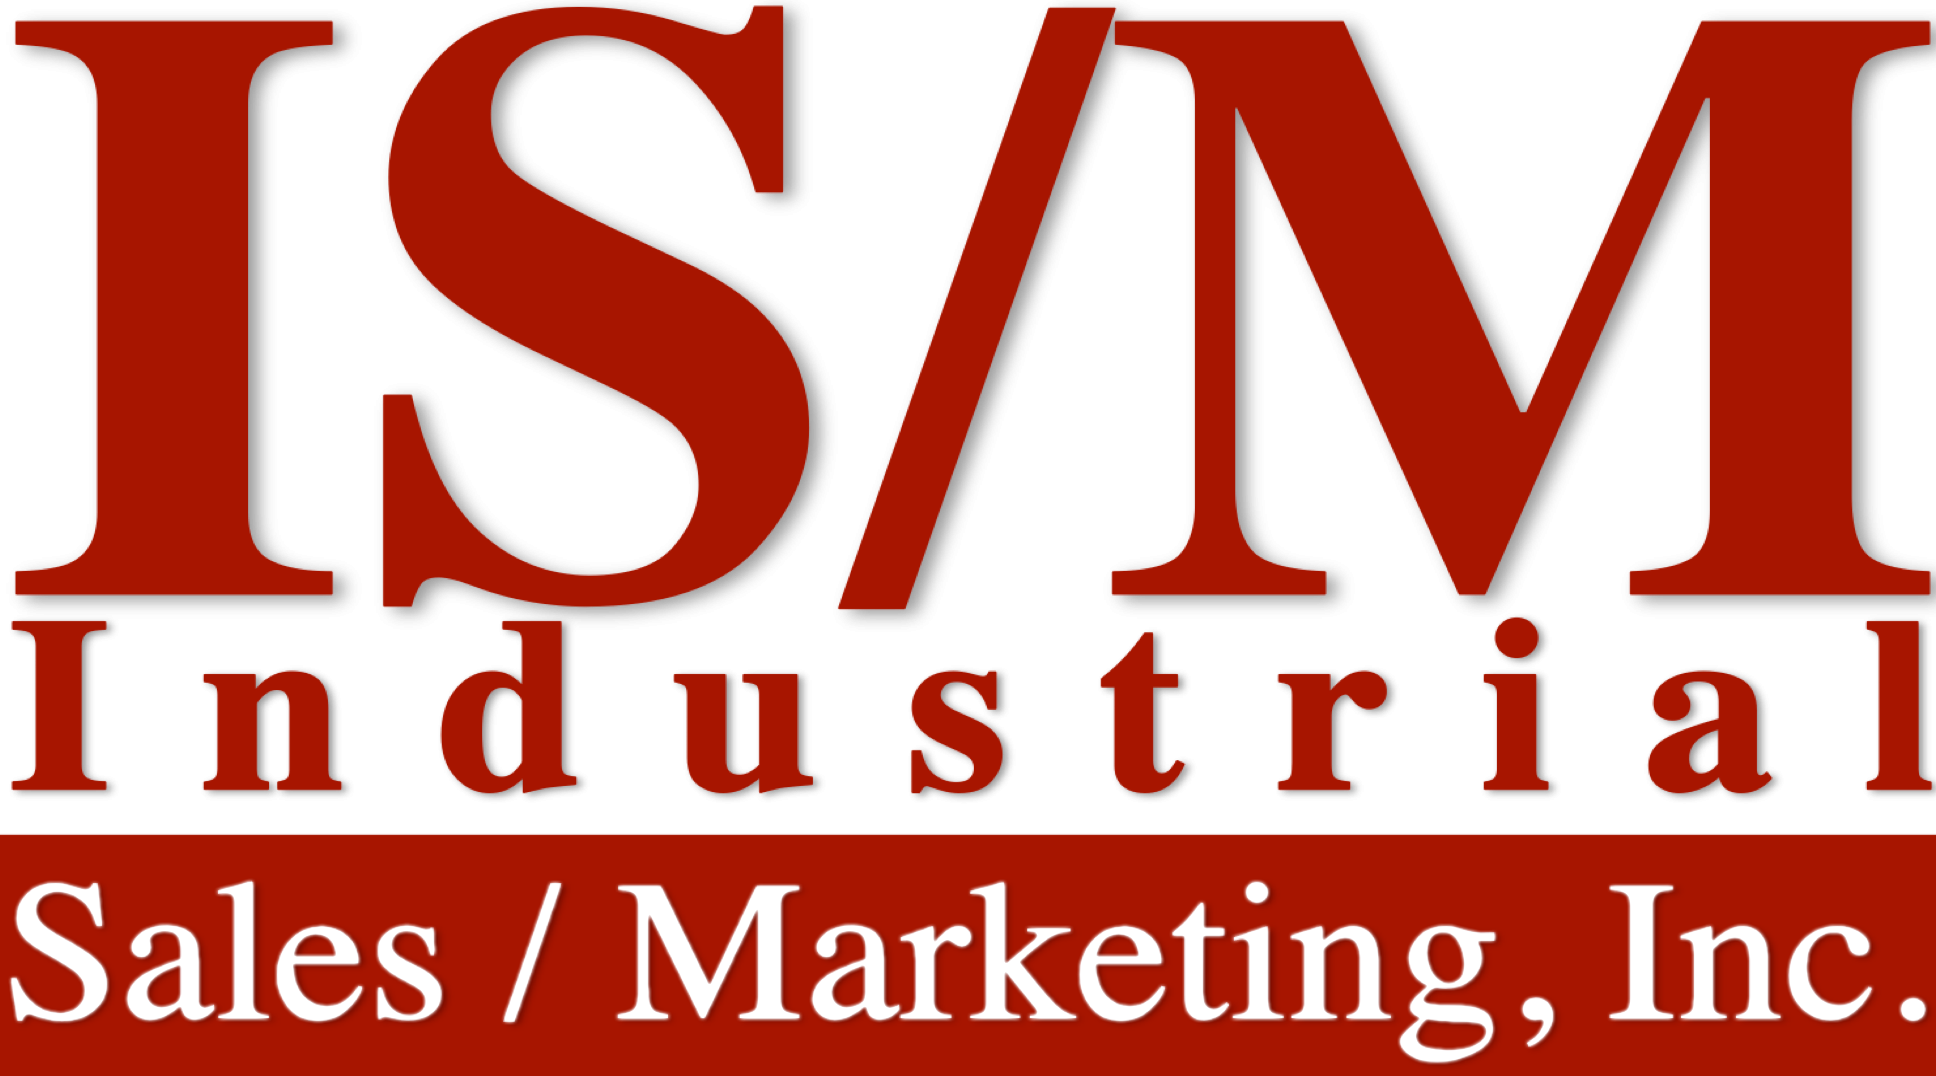 Industrial Sales / Marketing, Inc.